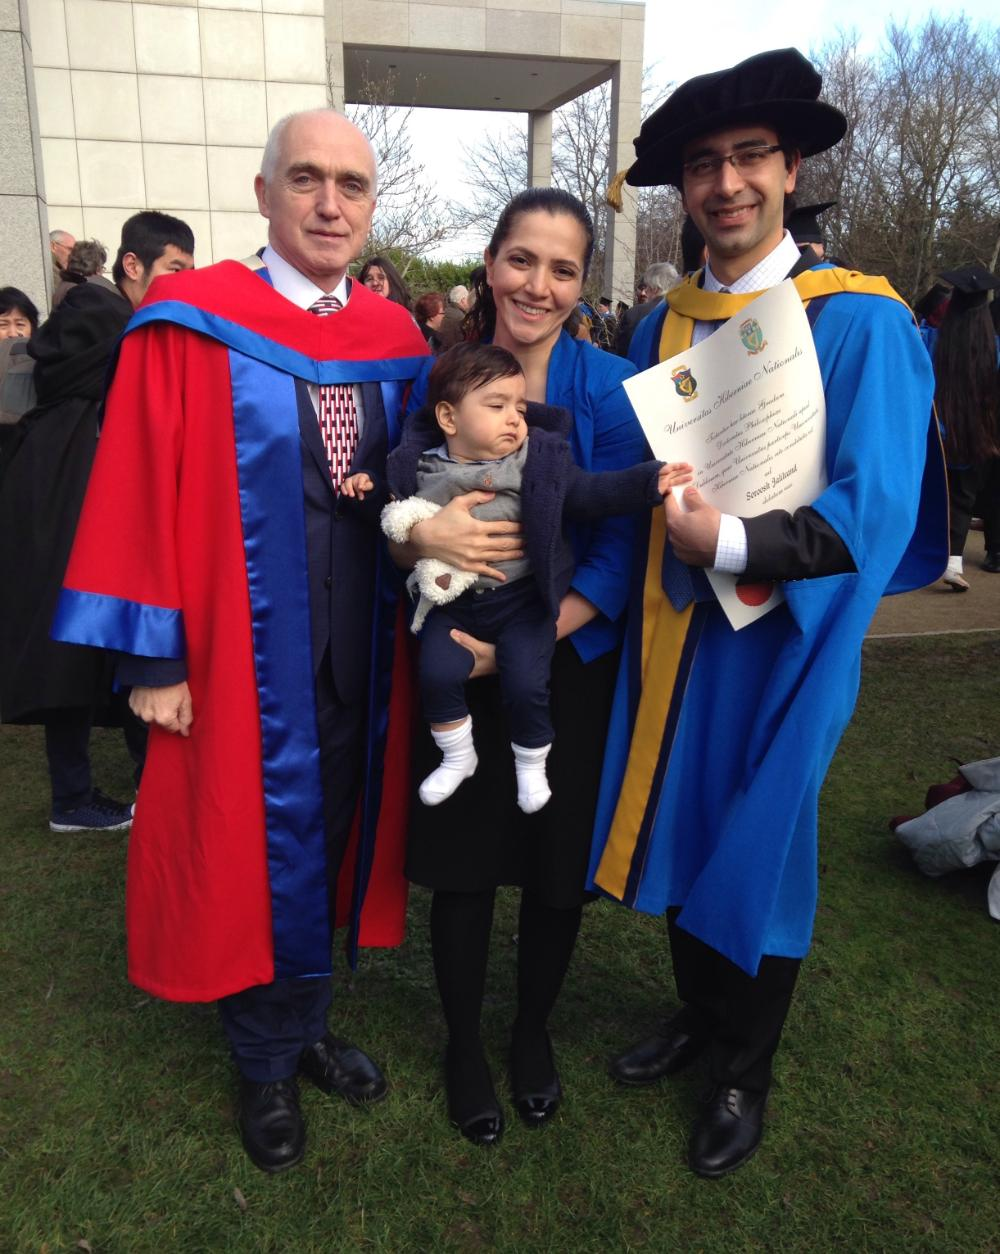 Dr Soroosh Jalilvand received his PhD in December. He is pictured here with Professor Eugene OBrien and his wife Dr Sogol Fallah (graduate of 2016) and son, Kian